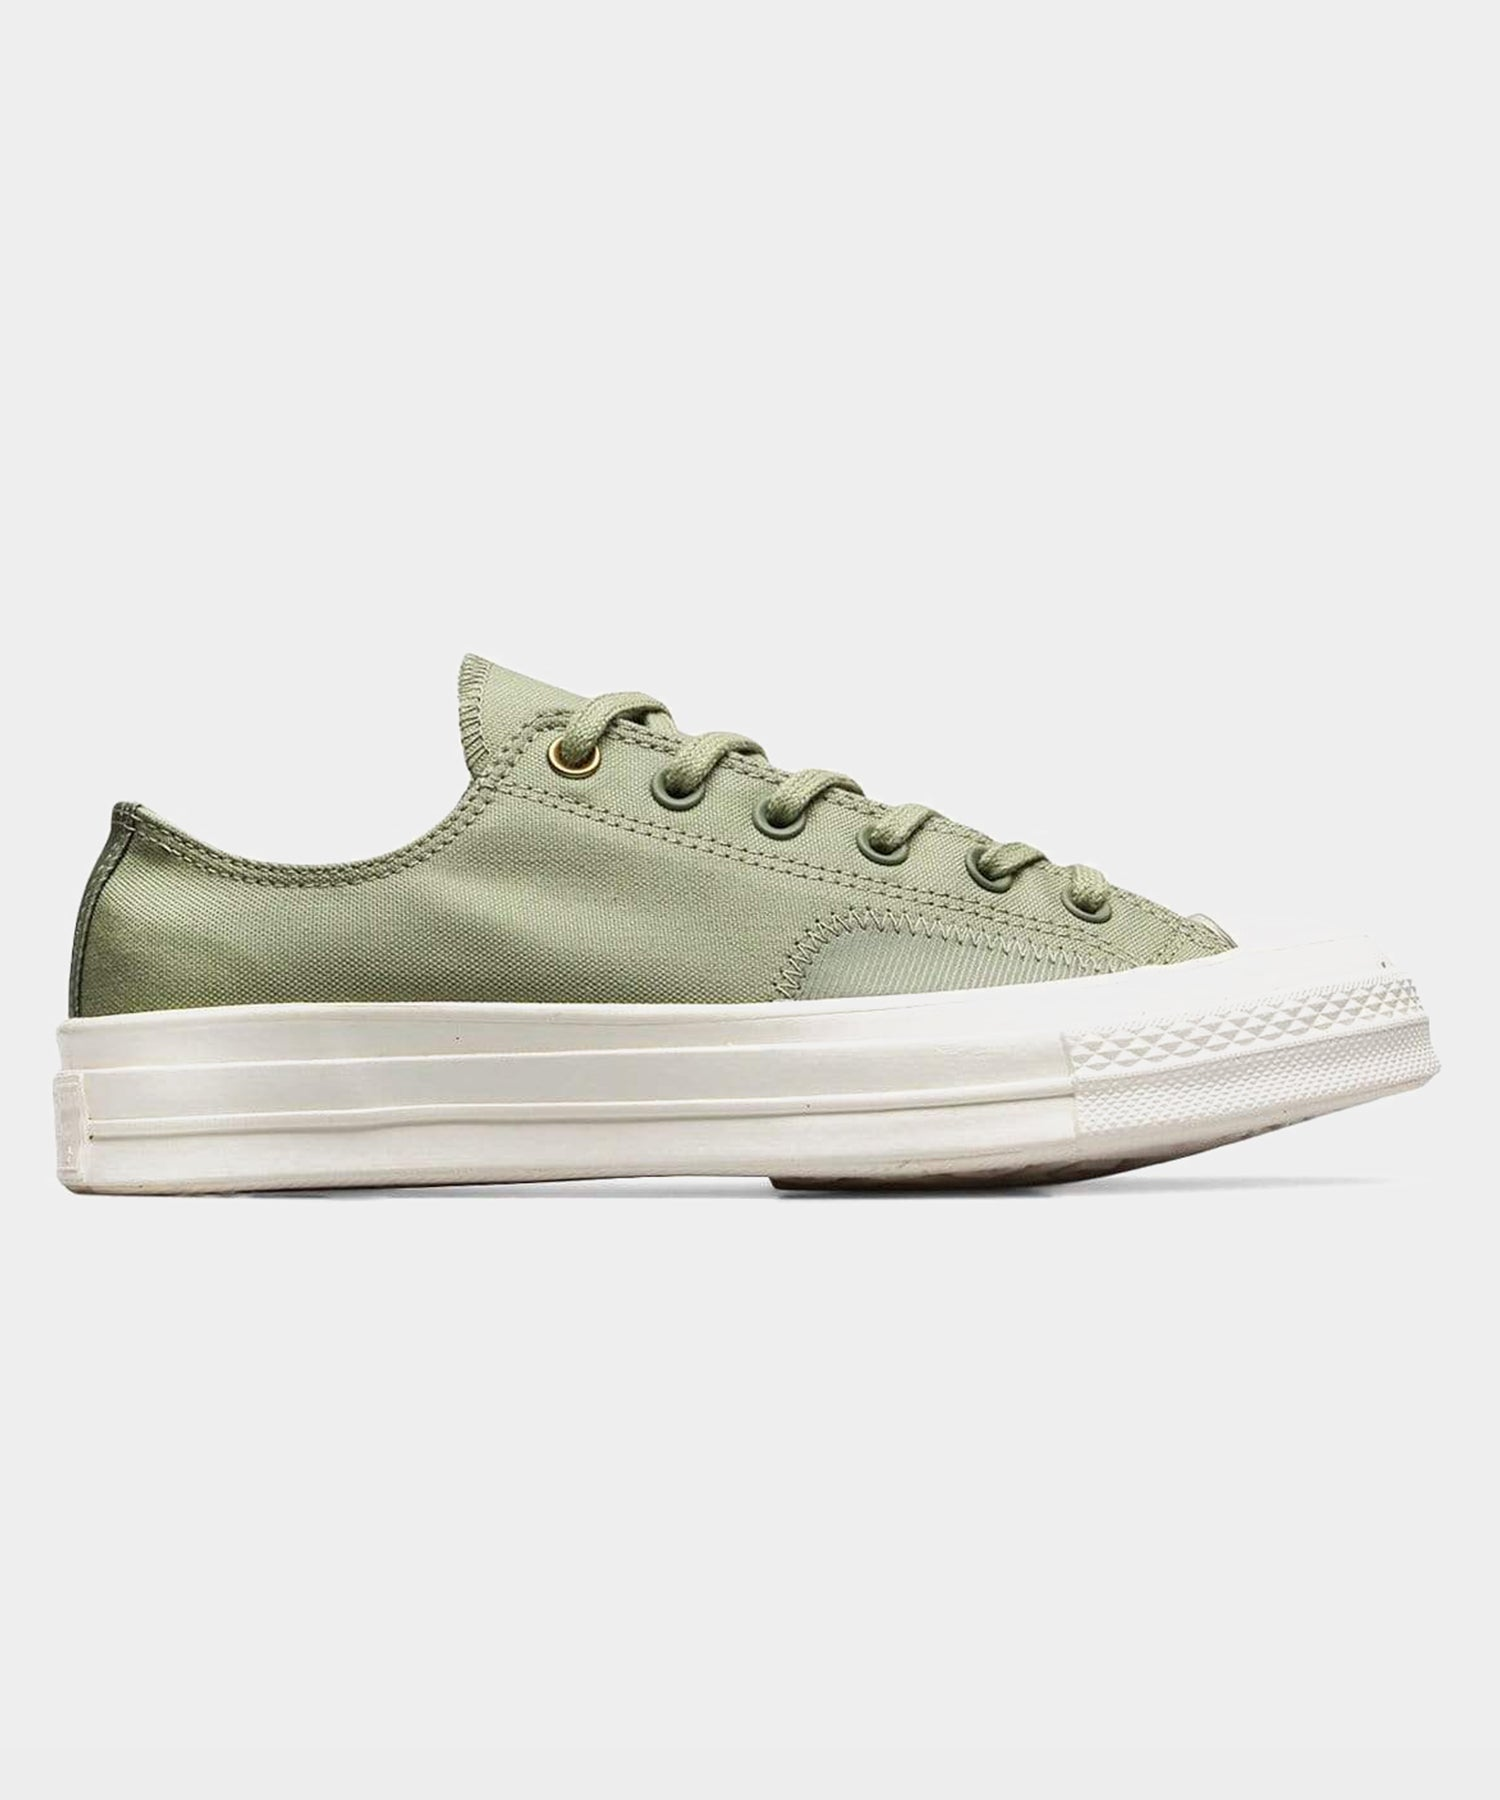 Converse Chuck 70 Low Ox in Sage